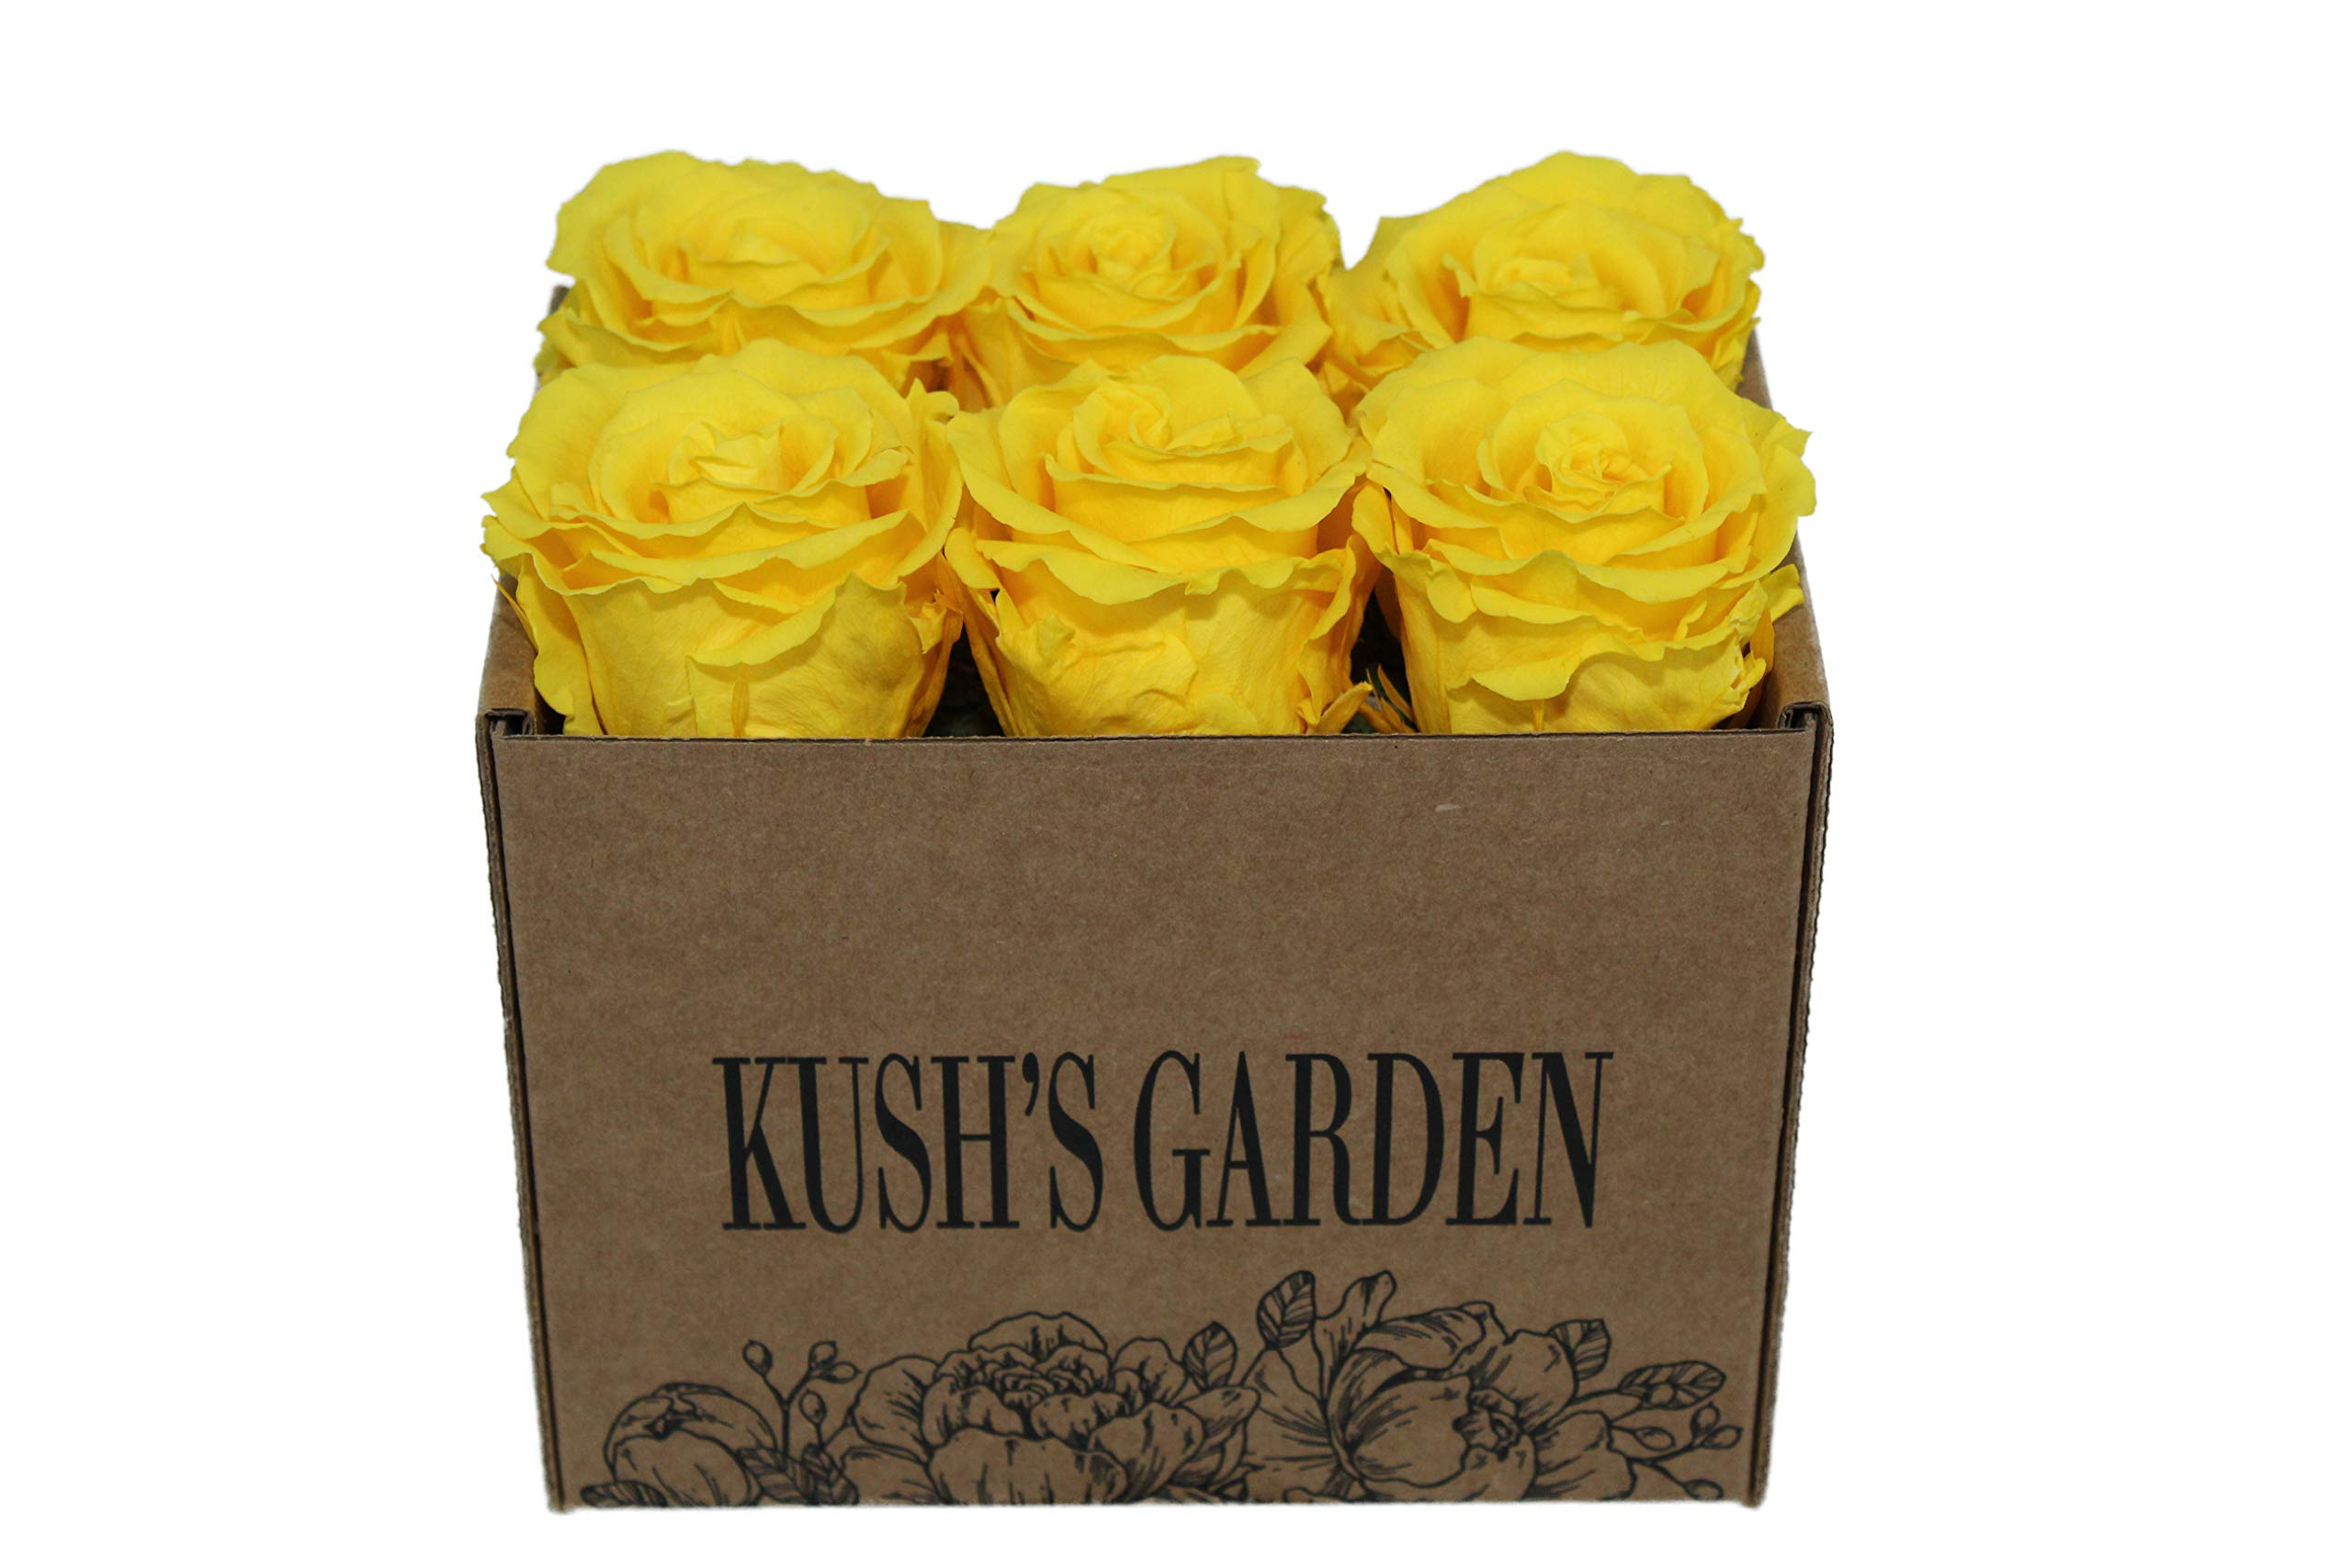 KUSHS GARDEN Real Preserved Roses in Box (Sunshine Yellow) by KUSHS GARDEN